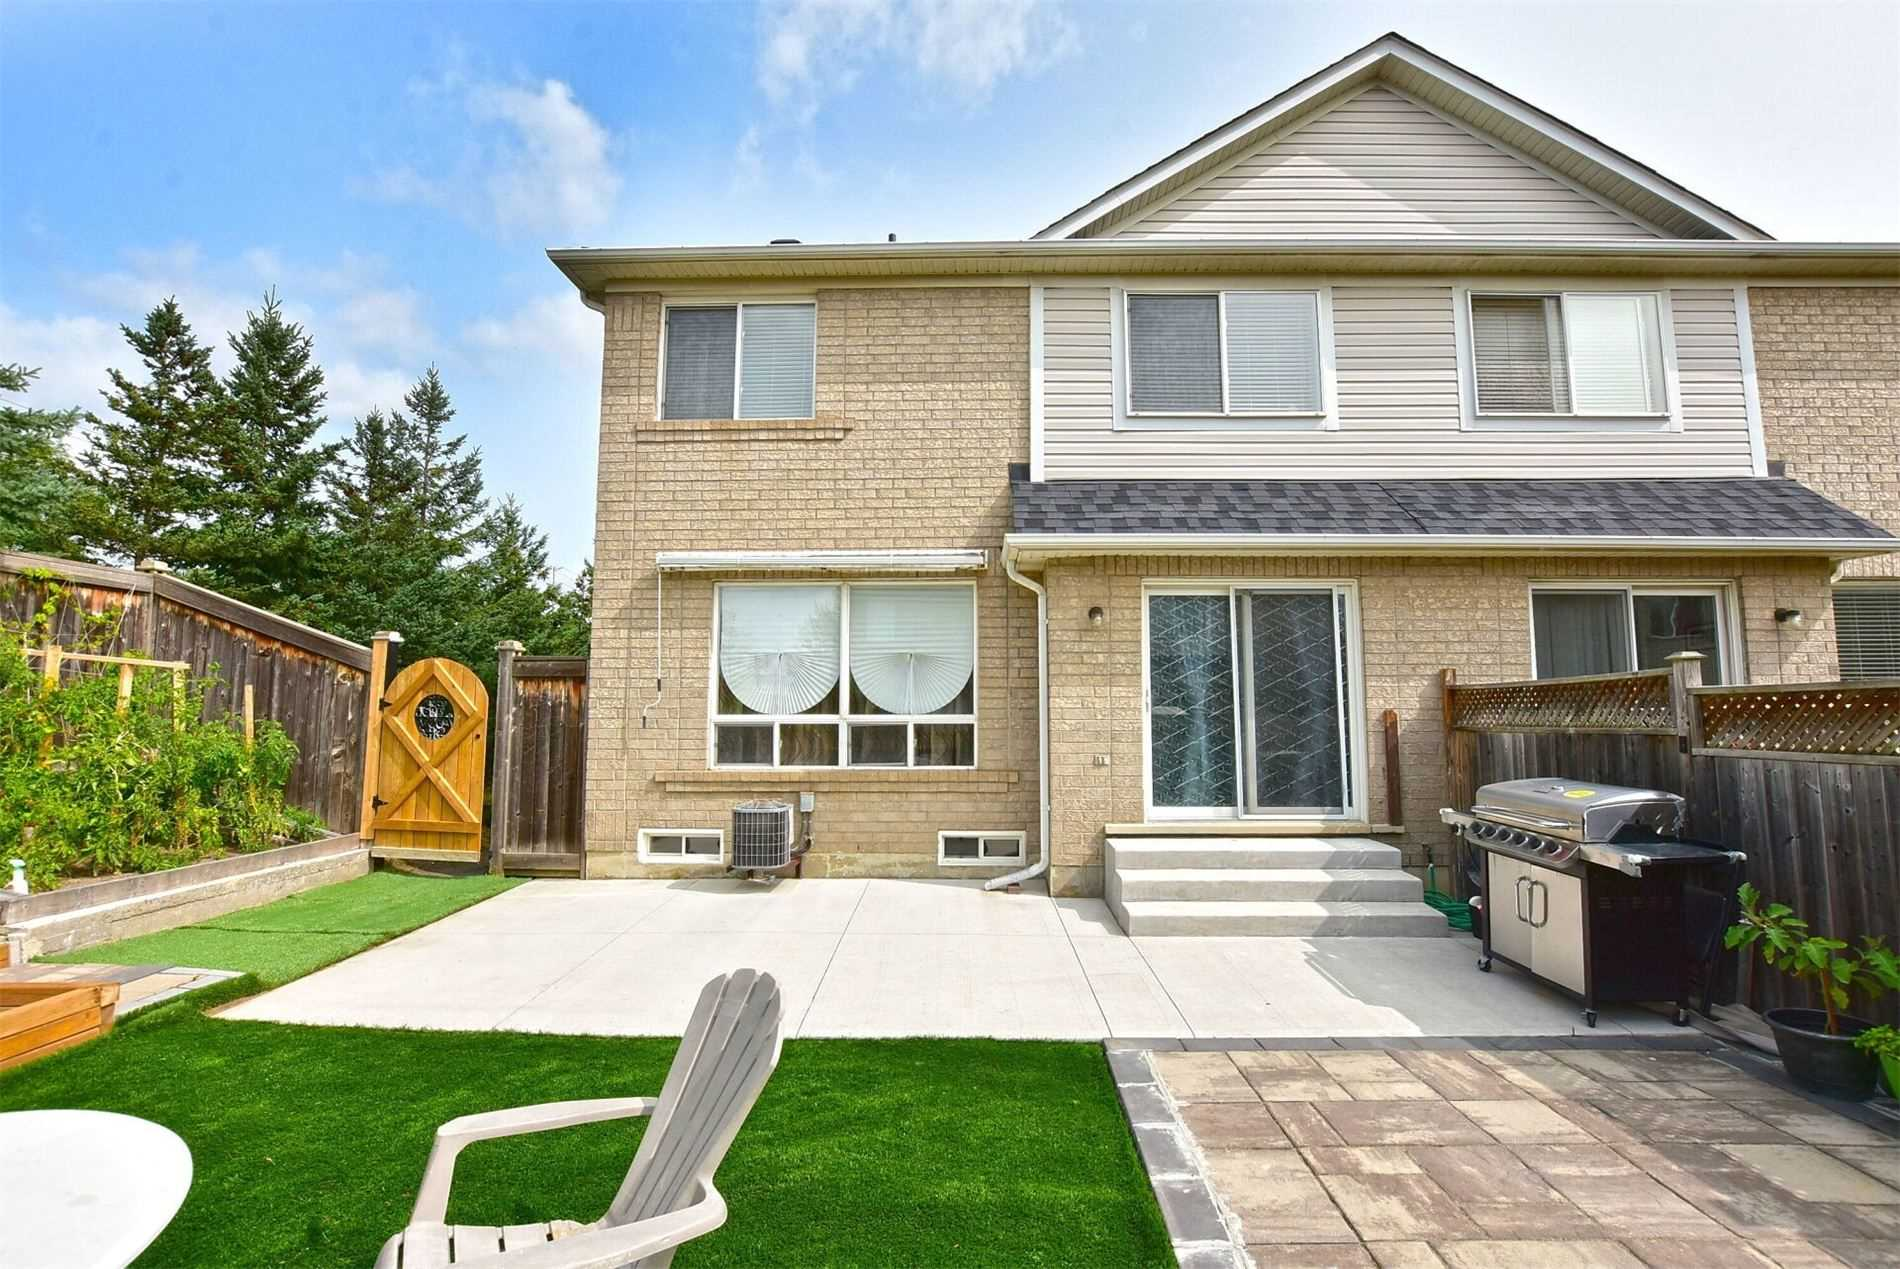 716 Edwards Ave, Milton, Ontario L9T6B3, 3 Bedrooms Bedrooms, ,3 BathroomsBathrooms,Semi-Detached,For Sale,Edwards,W4911218